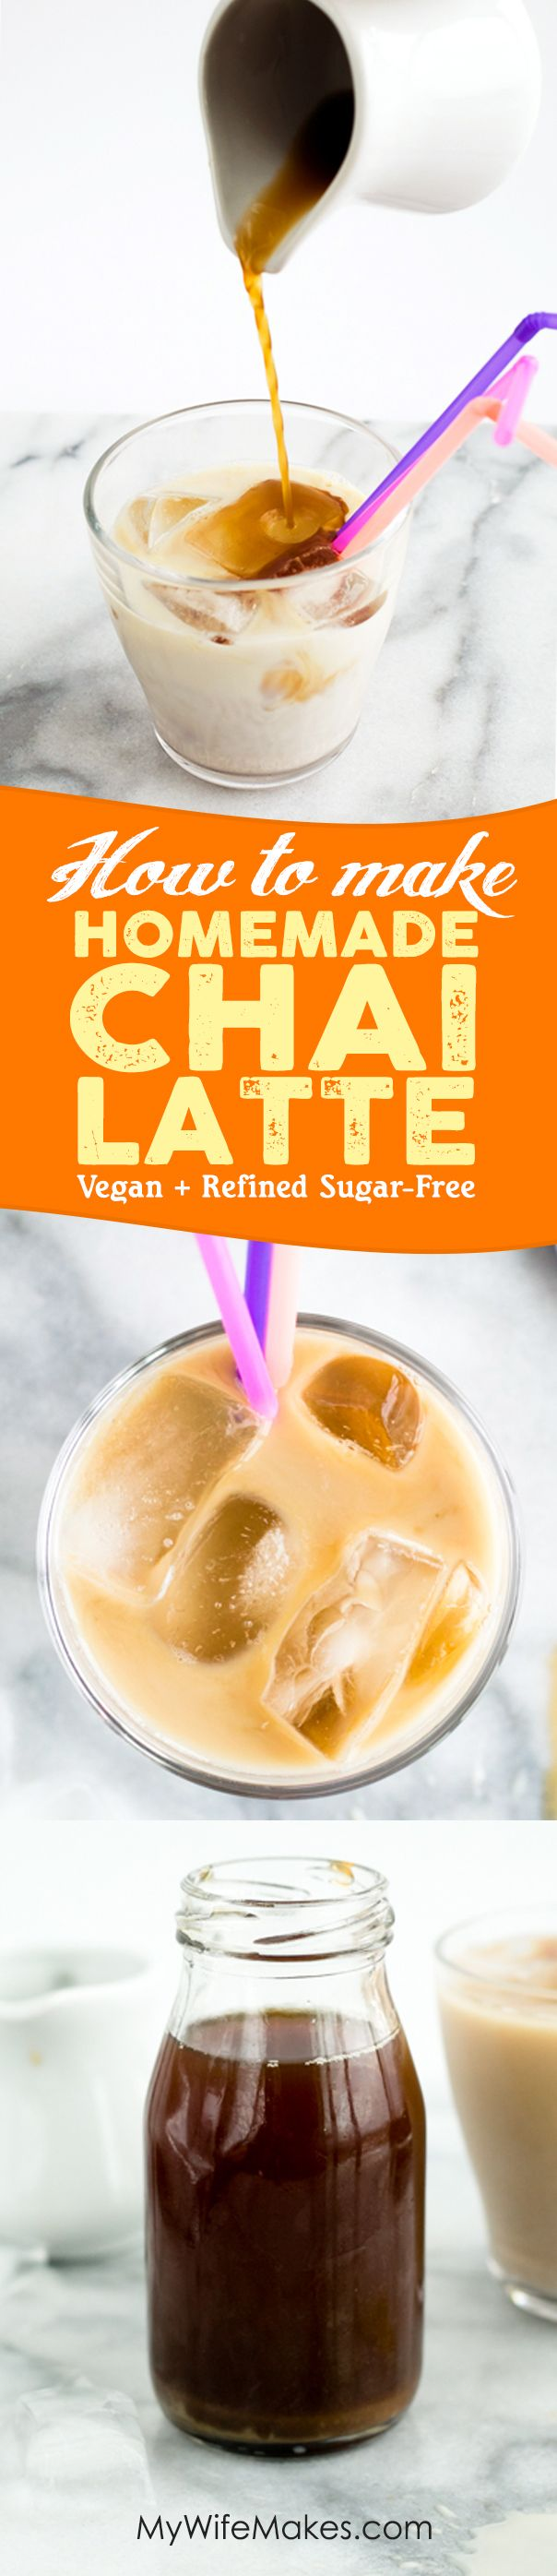 Homemade Chai Syrup made with freshly ground Ginger, Cardamom, Black Pepper, Cloves, Star Anise and Cane Sugar. Topped off with creamy Almond Milk for the perfect Chai Tea Latte. #chai #tea #latte #vegan #homemade #cafe #recipe #drink #refinedsugarfree #spice